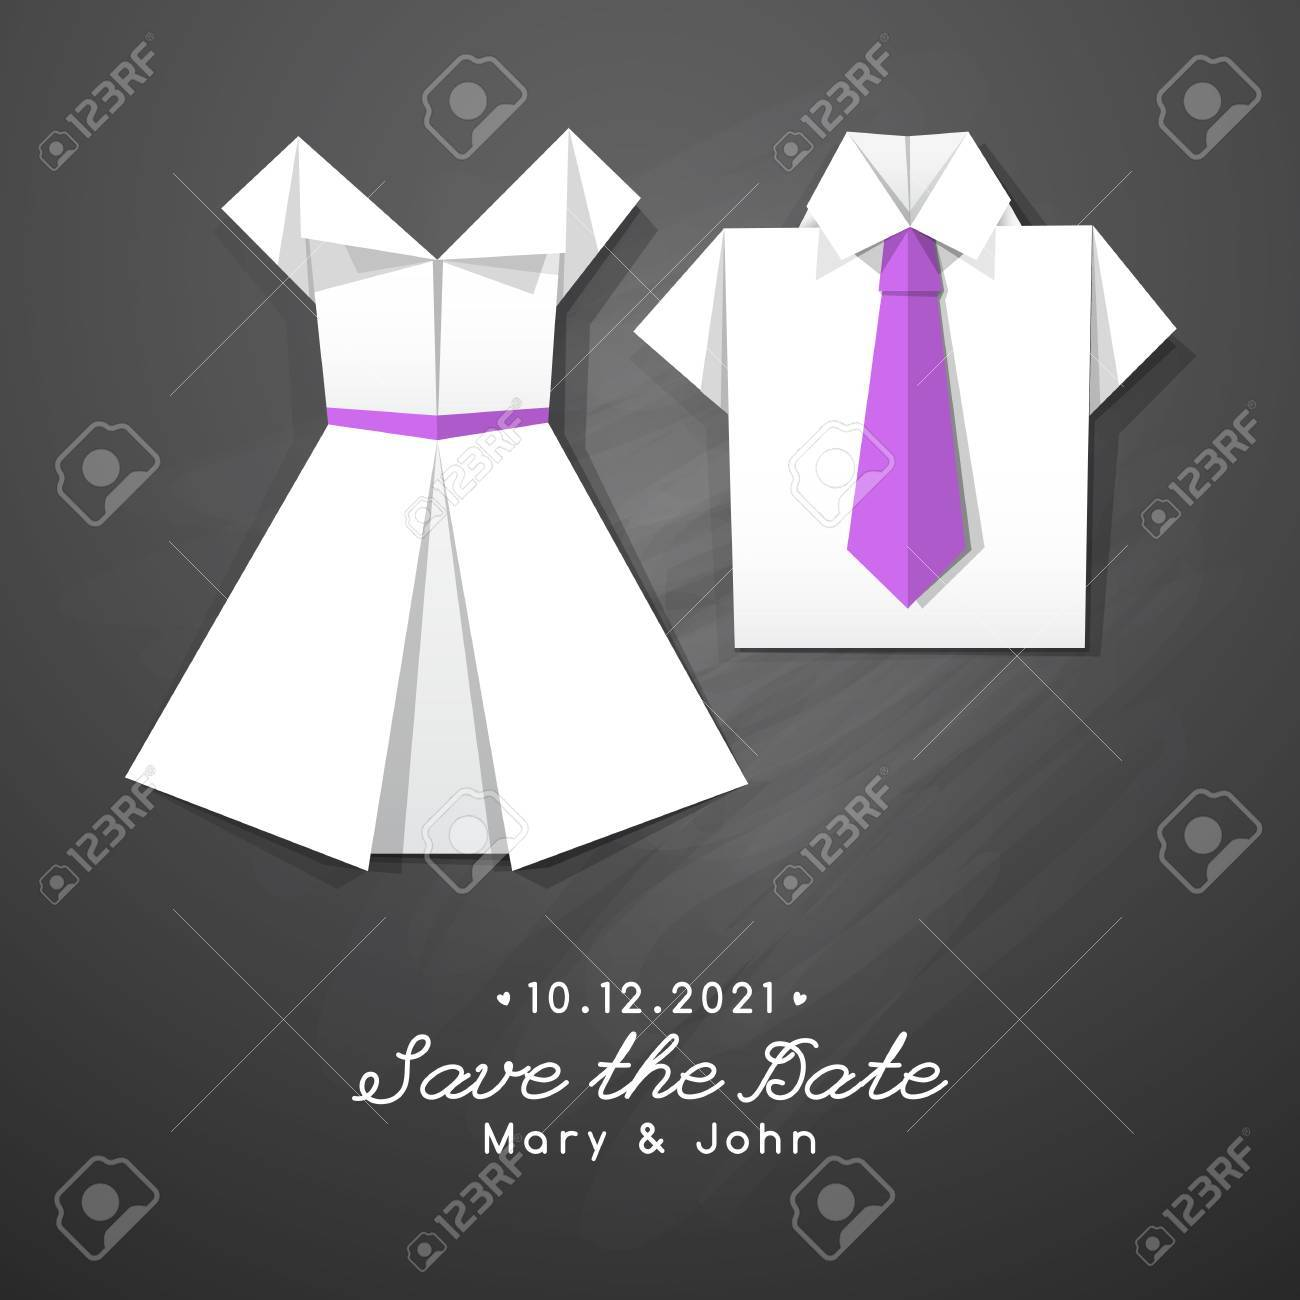 Vector Origami Dress And Shirt, Wedding Invitation Template Royalty ...